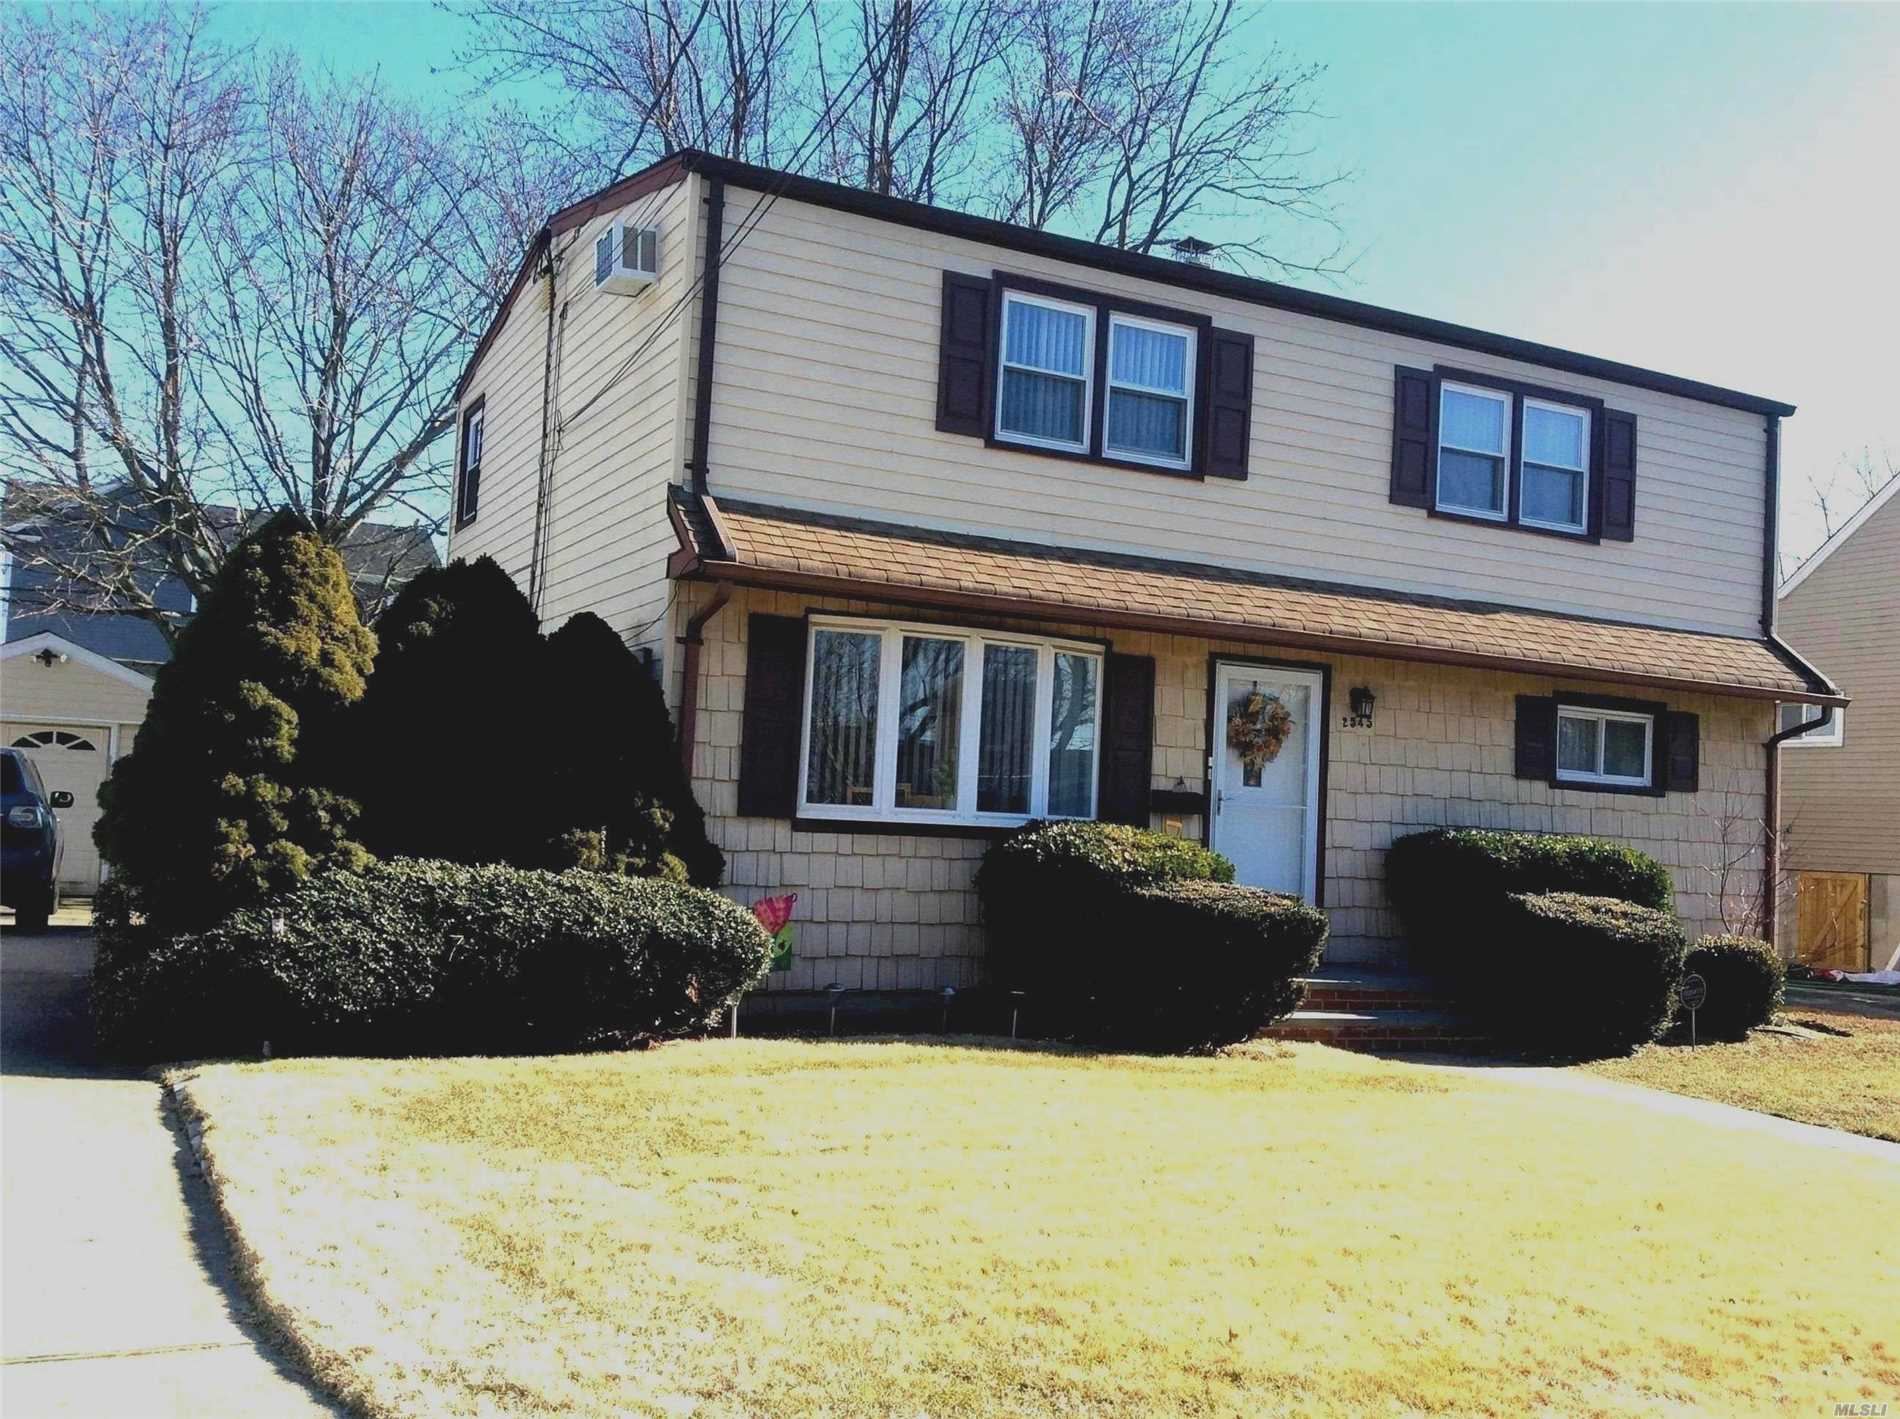 Beautiful Updated Colonial Home Featuring Eat In Kitchen, Living Room, 4 Bedrooms And 2 Full Bathrooms. Possible M/D With Permits. Large Property (59 X 100) With Private Backyard. Close To Schools, Parks, Shopping And Parkways. Flood Insurance Is Approximately $1318 Annually